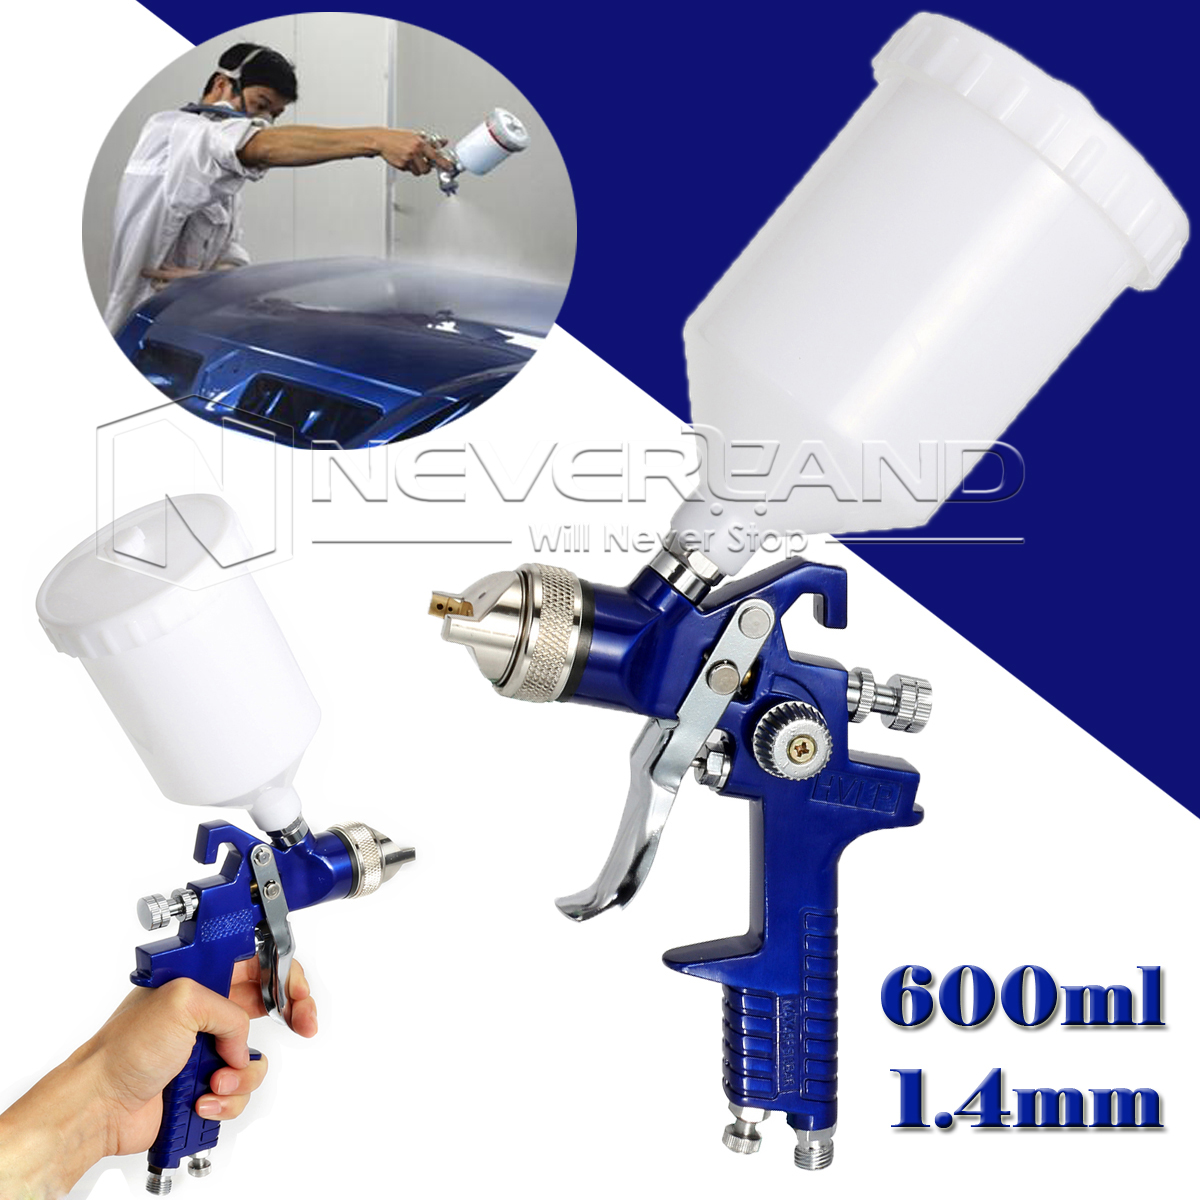 ФОТО Top Quality 1.4mm Nozzle 600ML HVLP Professional Spray Gun Air Spray Paint Guns For Car Auto Repair Tool Painting Kit